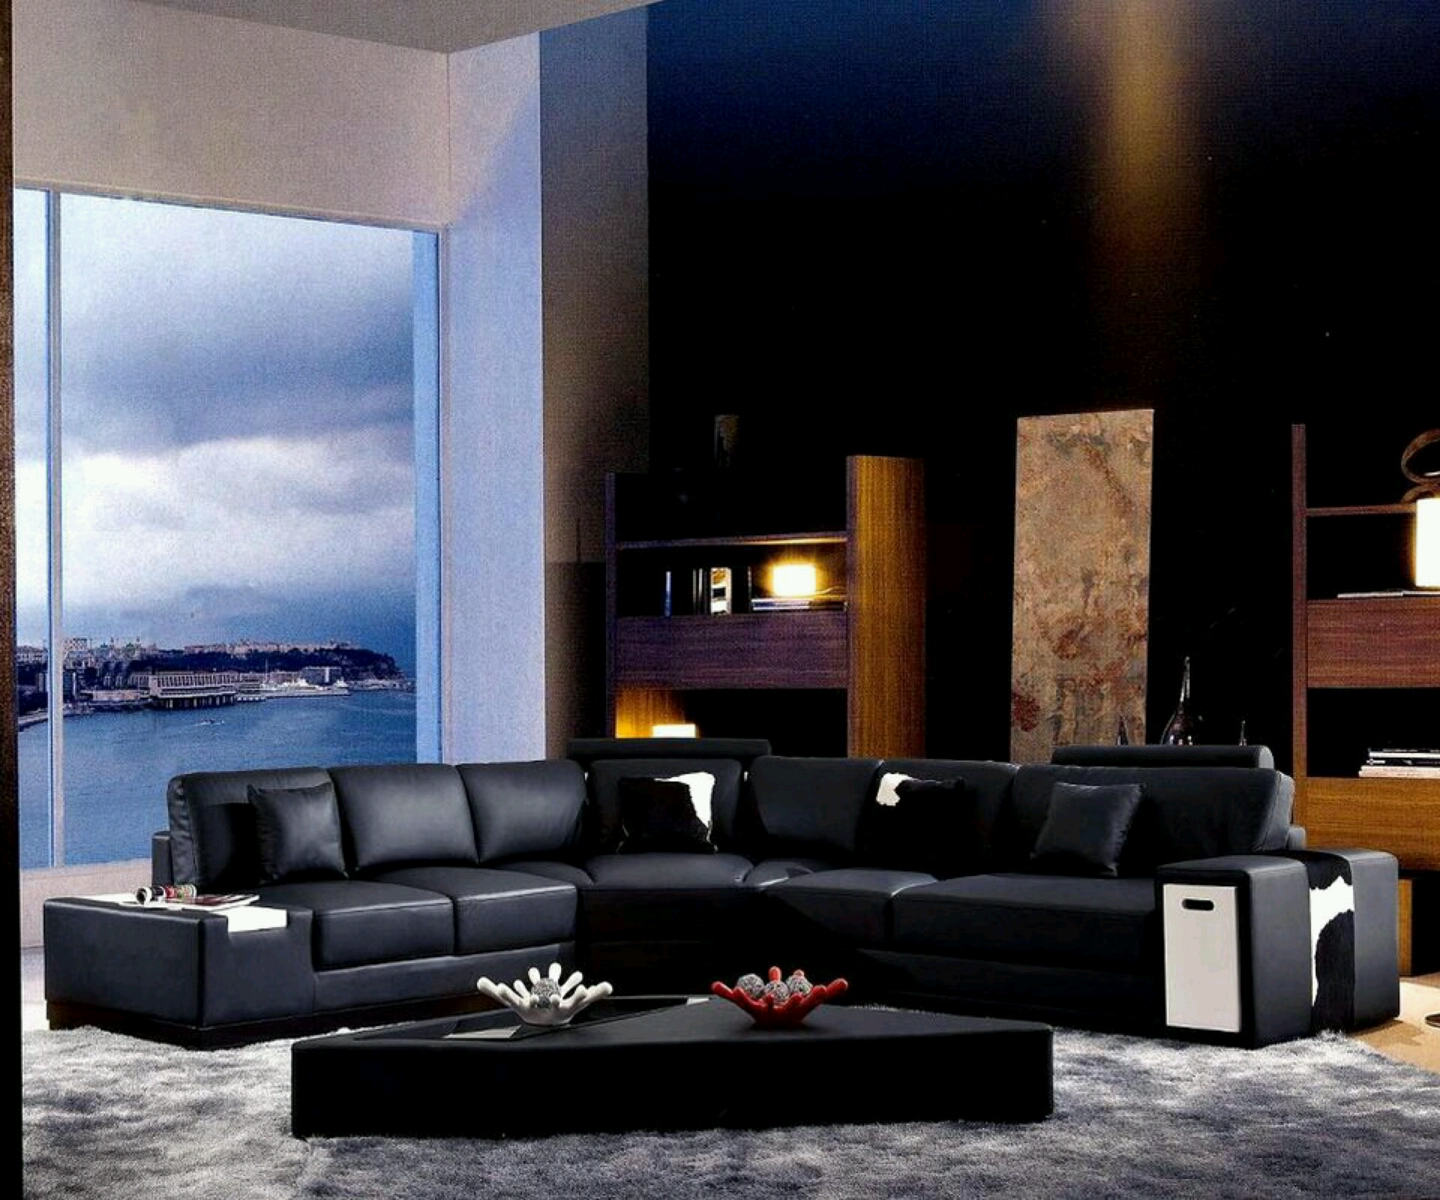 Luxury living rooms interior modern designs ideas.  Huntto.com